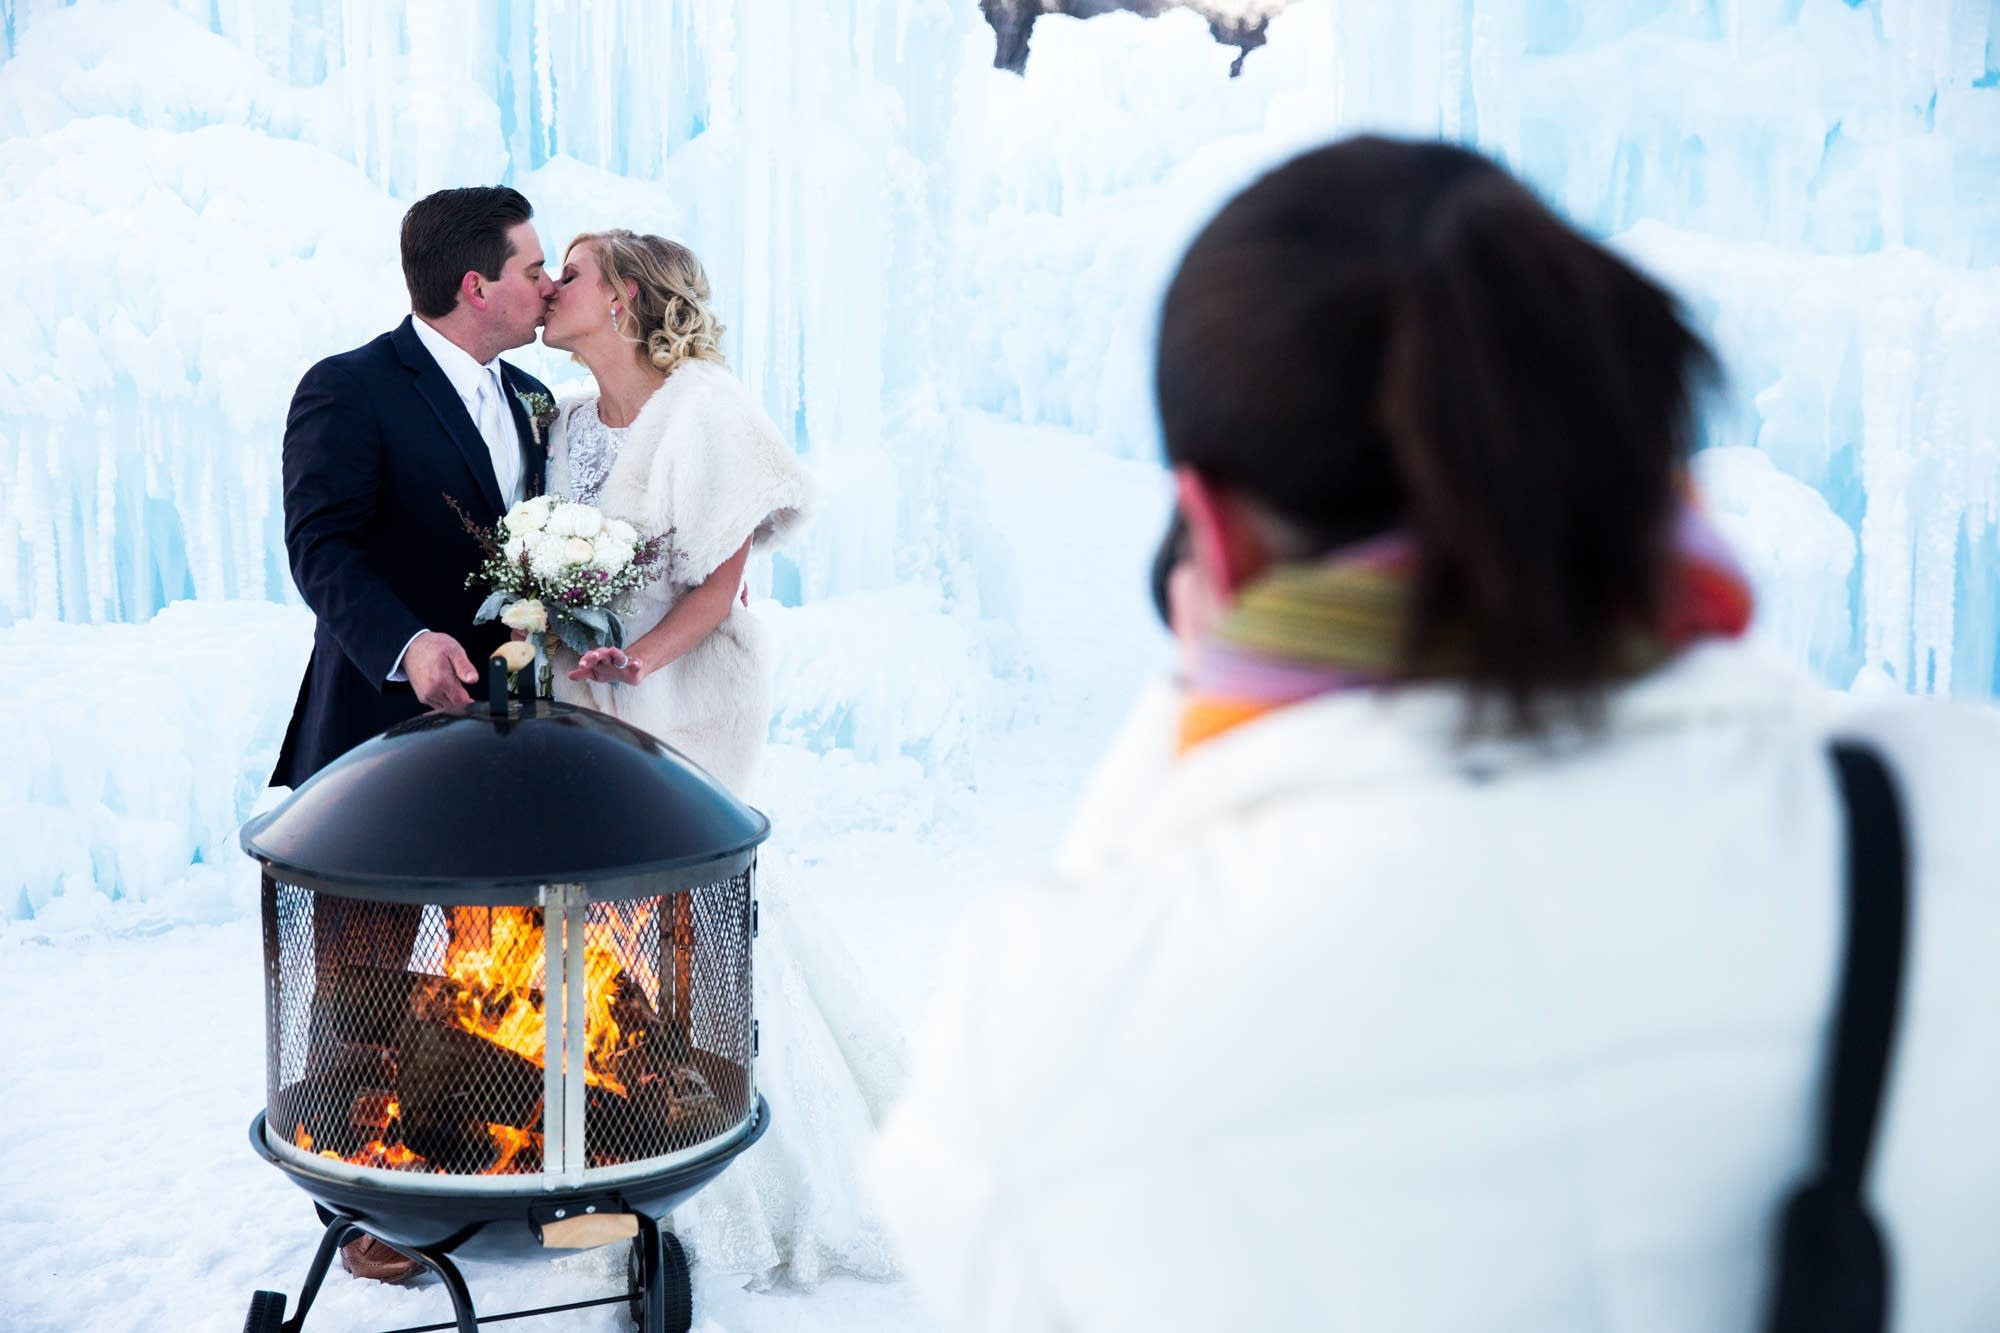 Newlyweds share a frigid kiss for the camera.